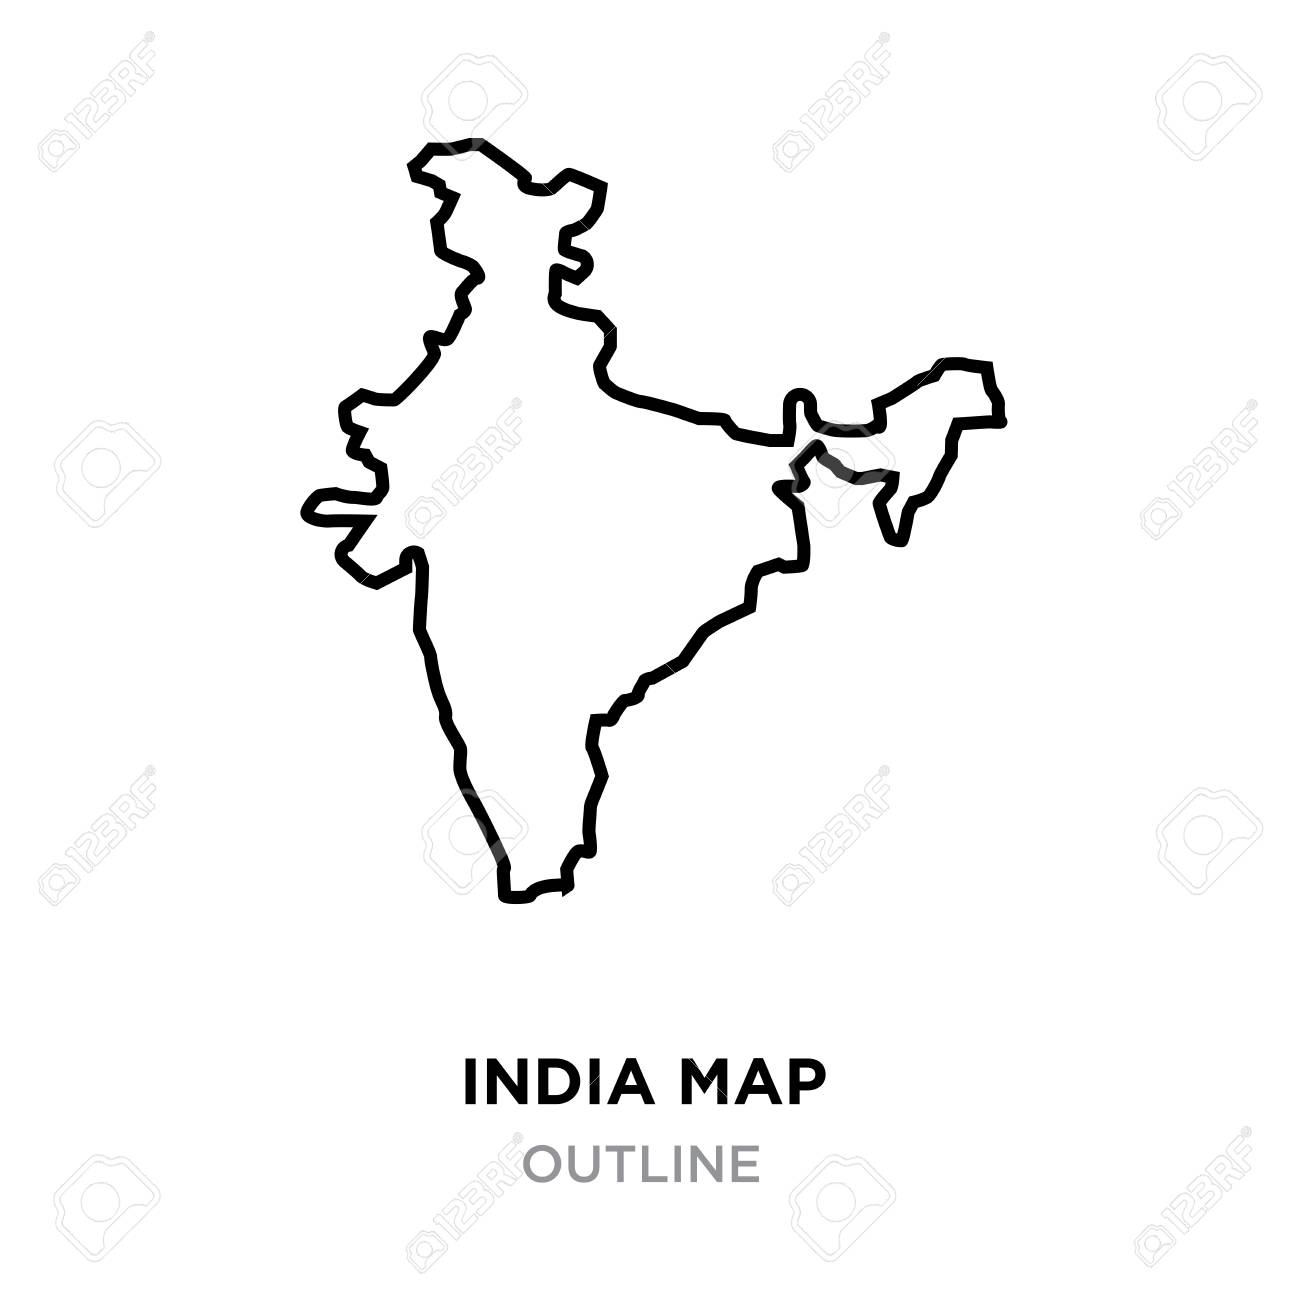 Indian map outline on white background, vector illustration.